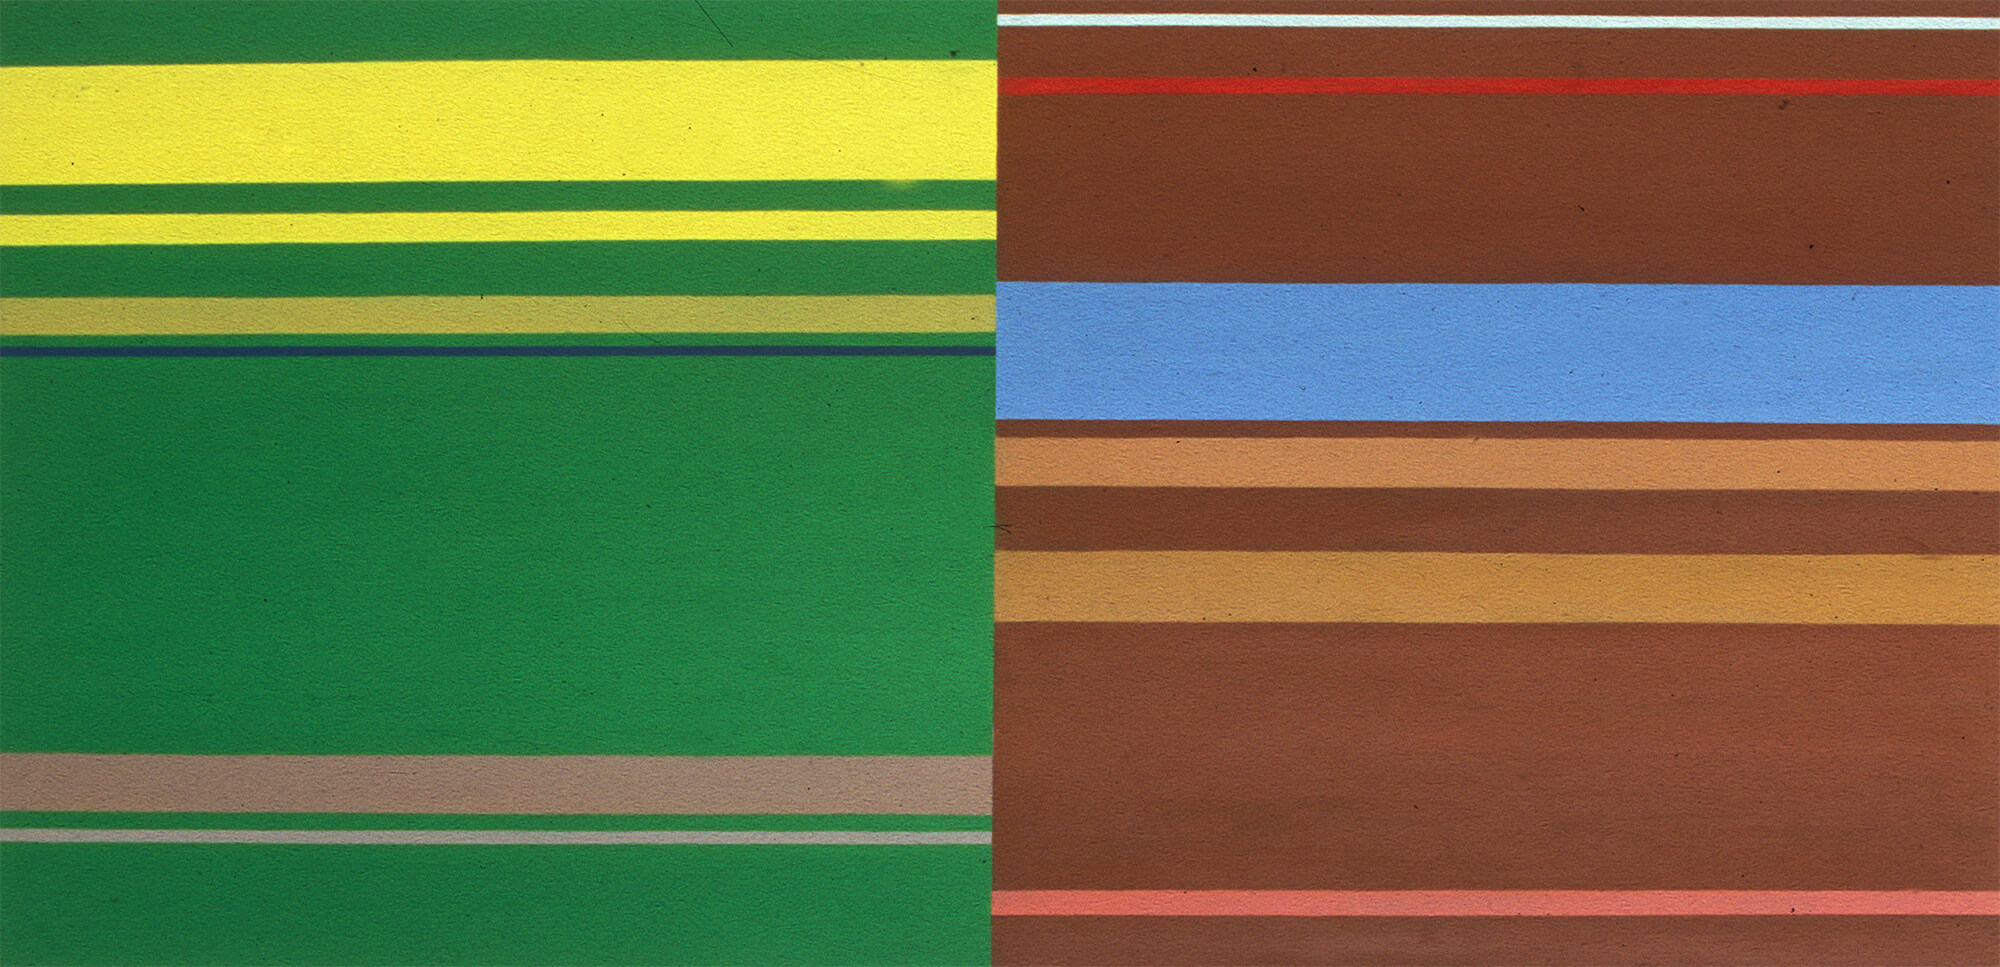 No title. Oil tempera on aluminum sheet, 62 x 118 cm, 2001